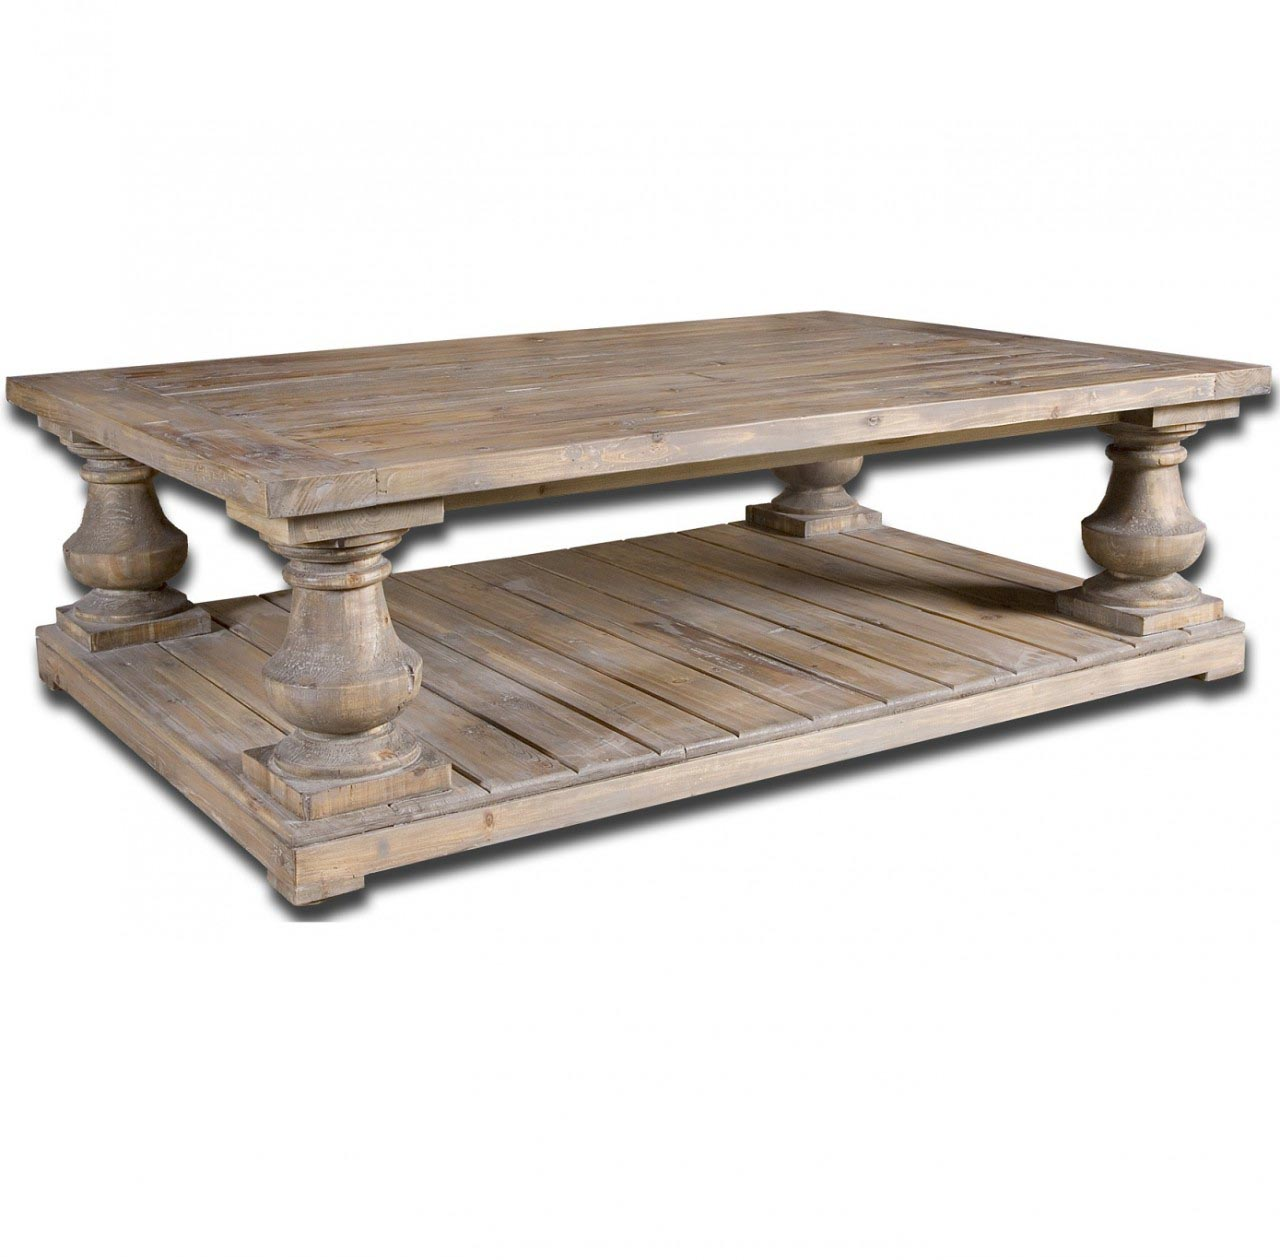 Distressed Wood Coffee Table Coffee Table Design Ideas